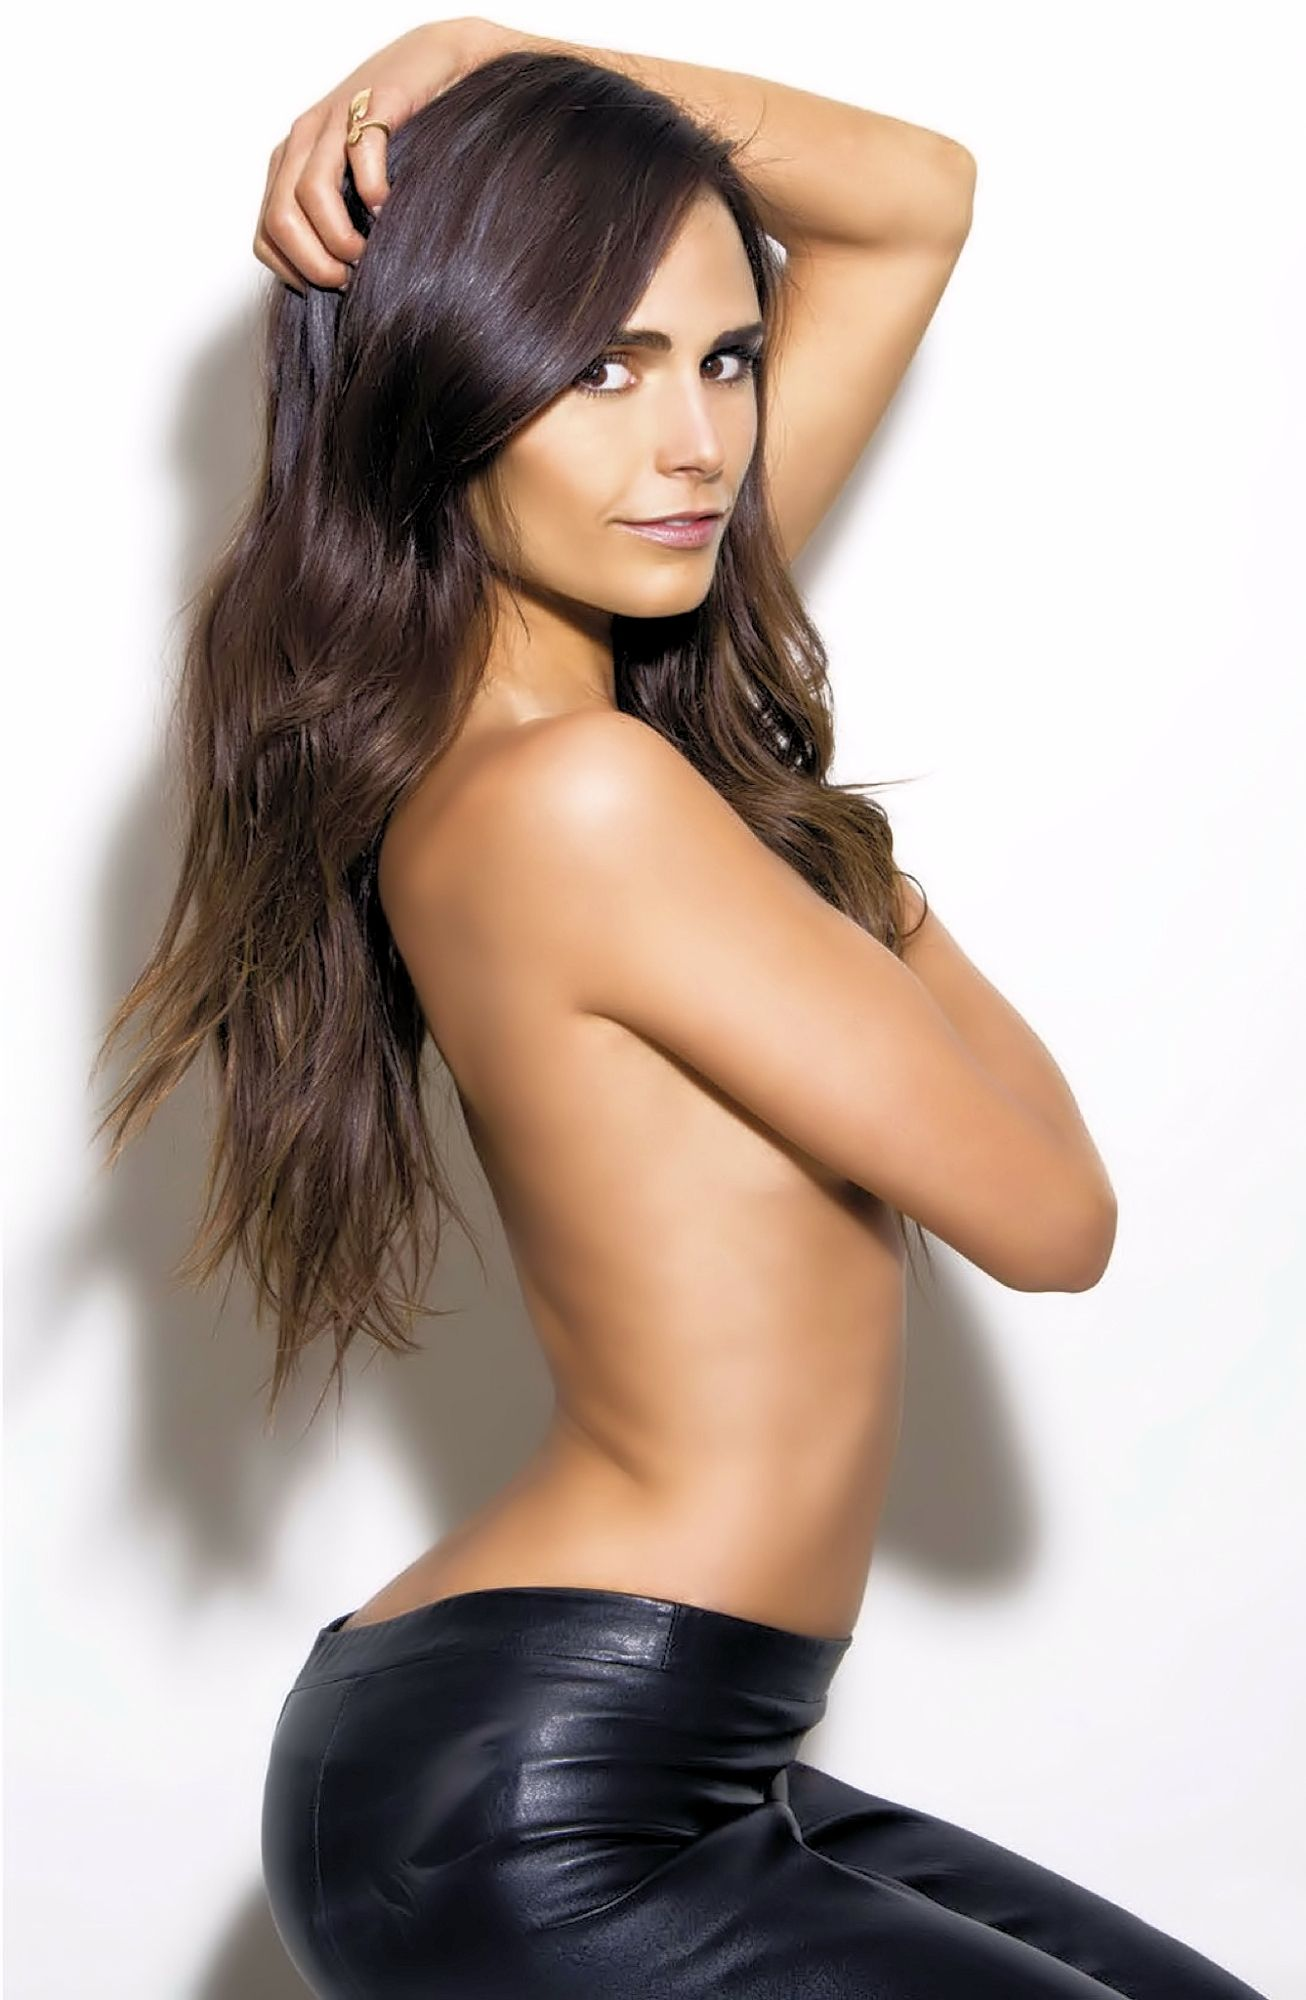 With you Jordana brewster cleavage right! Idea